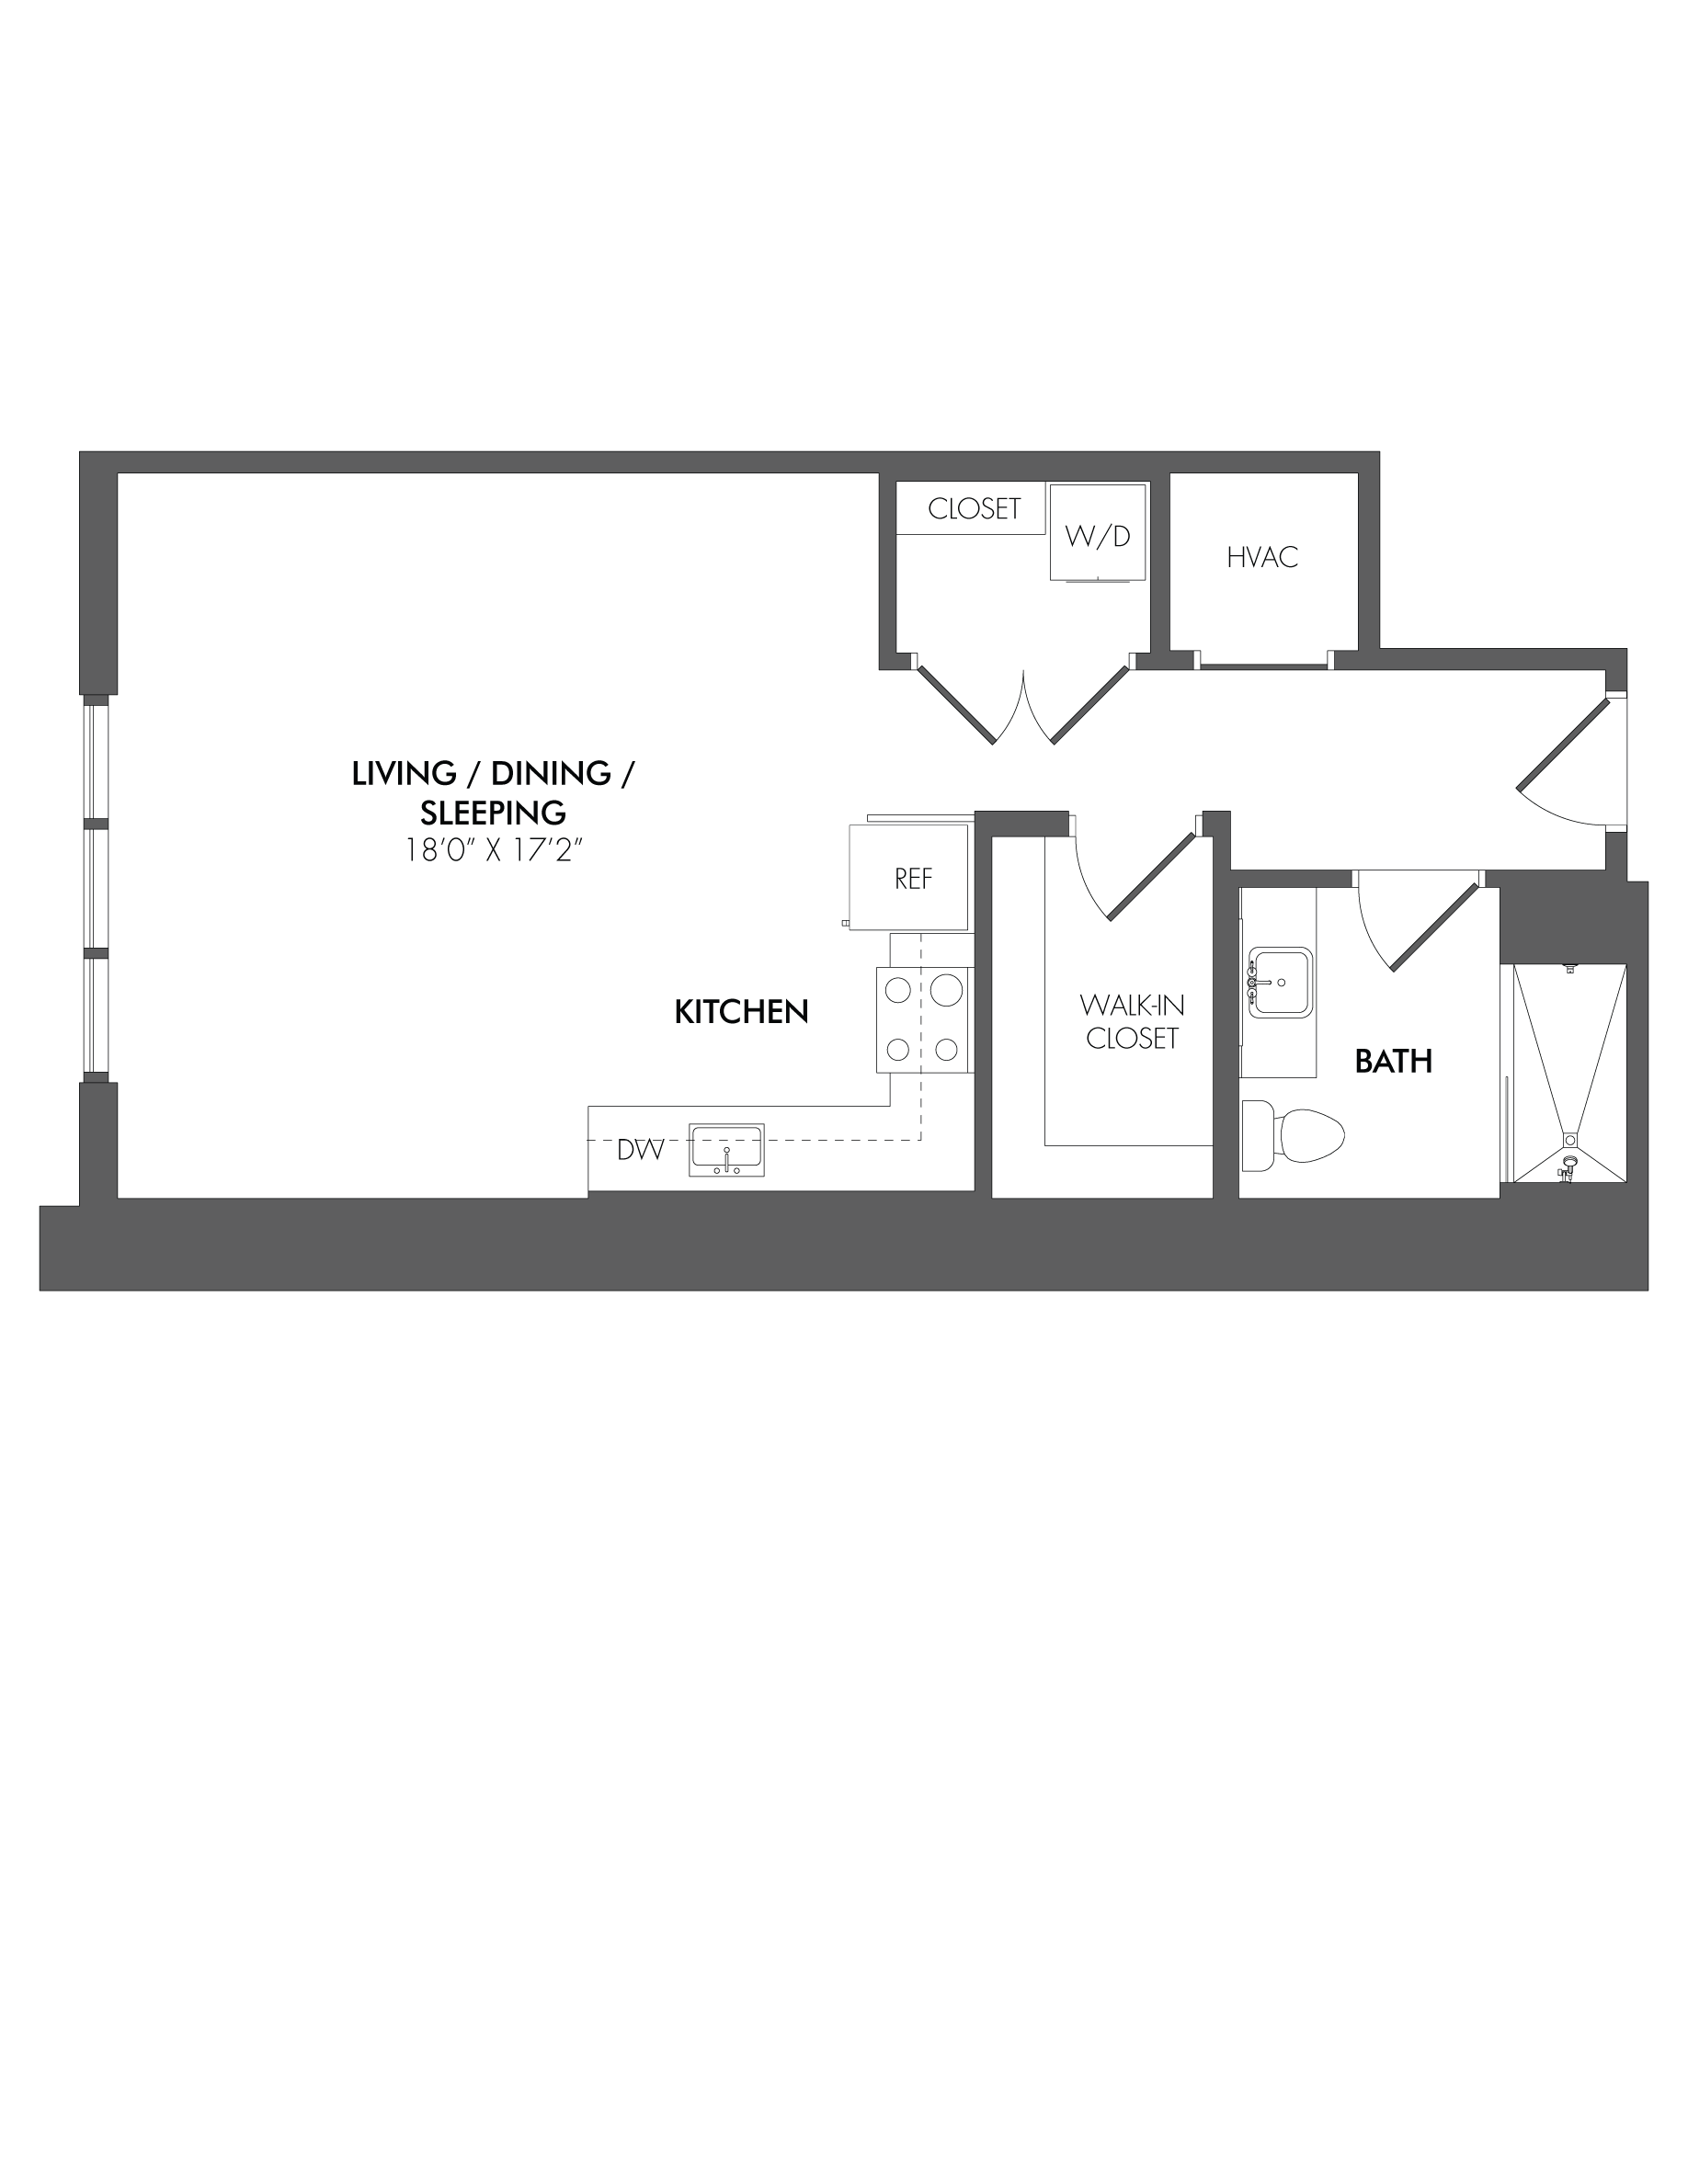 Apartment 2009 floorplan